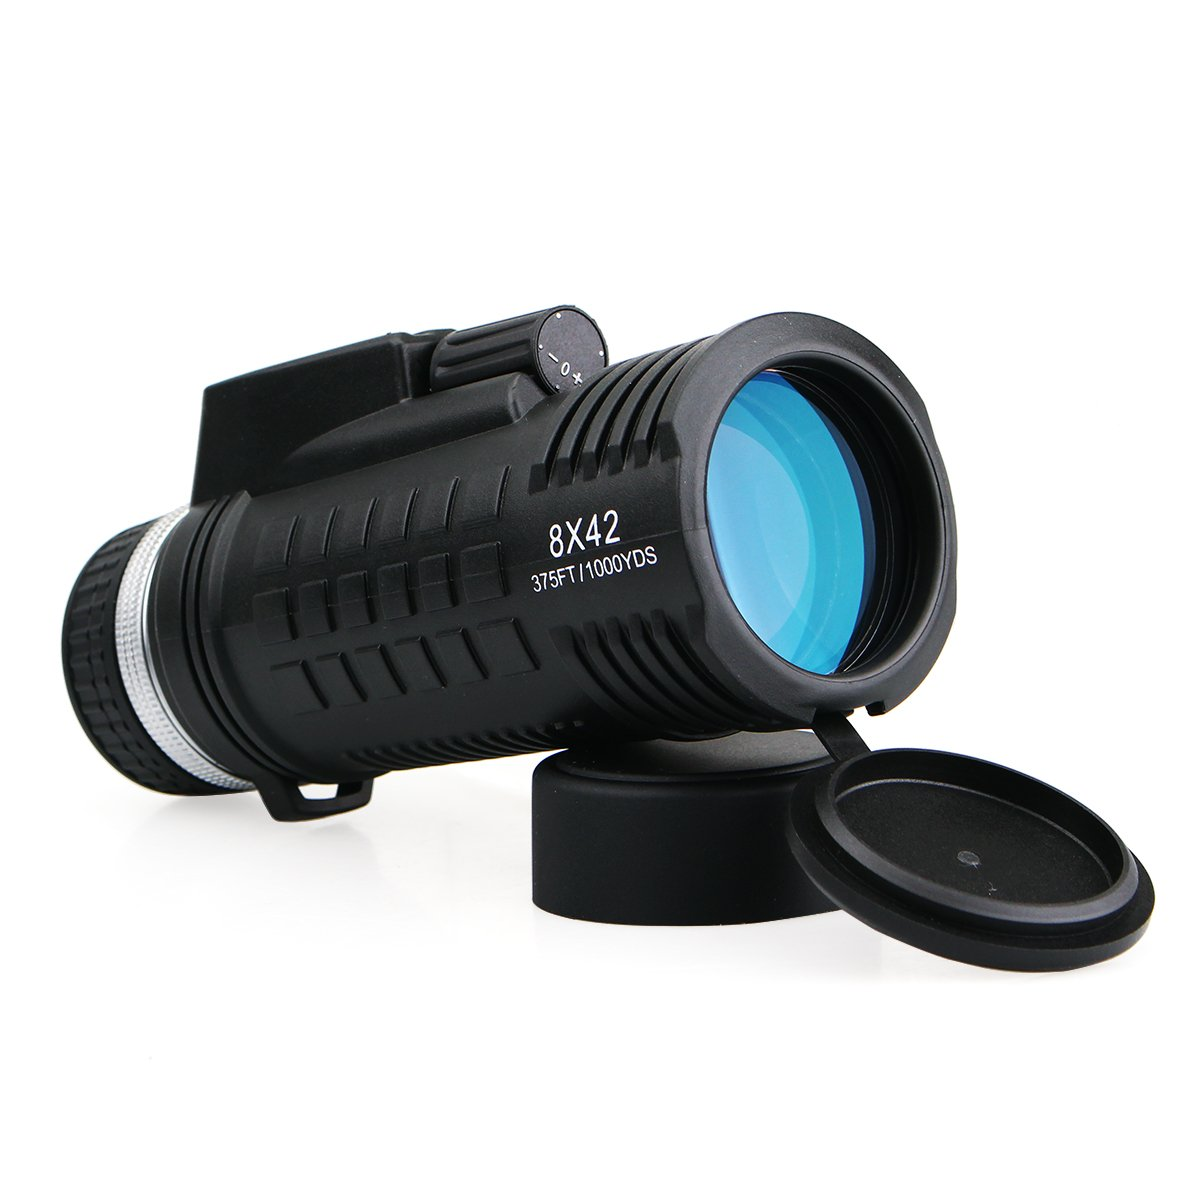 SVBONY SV42 Monocular Telescope Built-in Compass Rangefinder 8×42 BAK-4 Prism Waterproof Scope Single Hand Focus for Bird Watching Hunting Camping